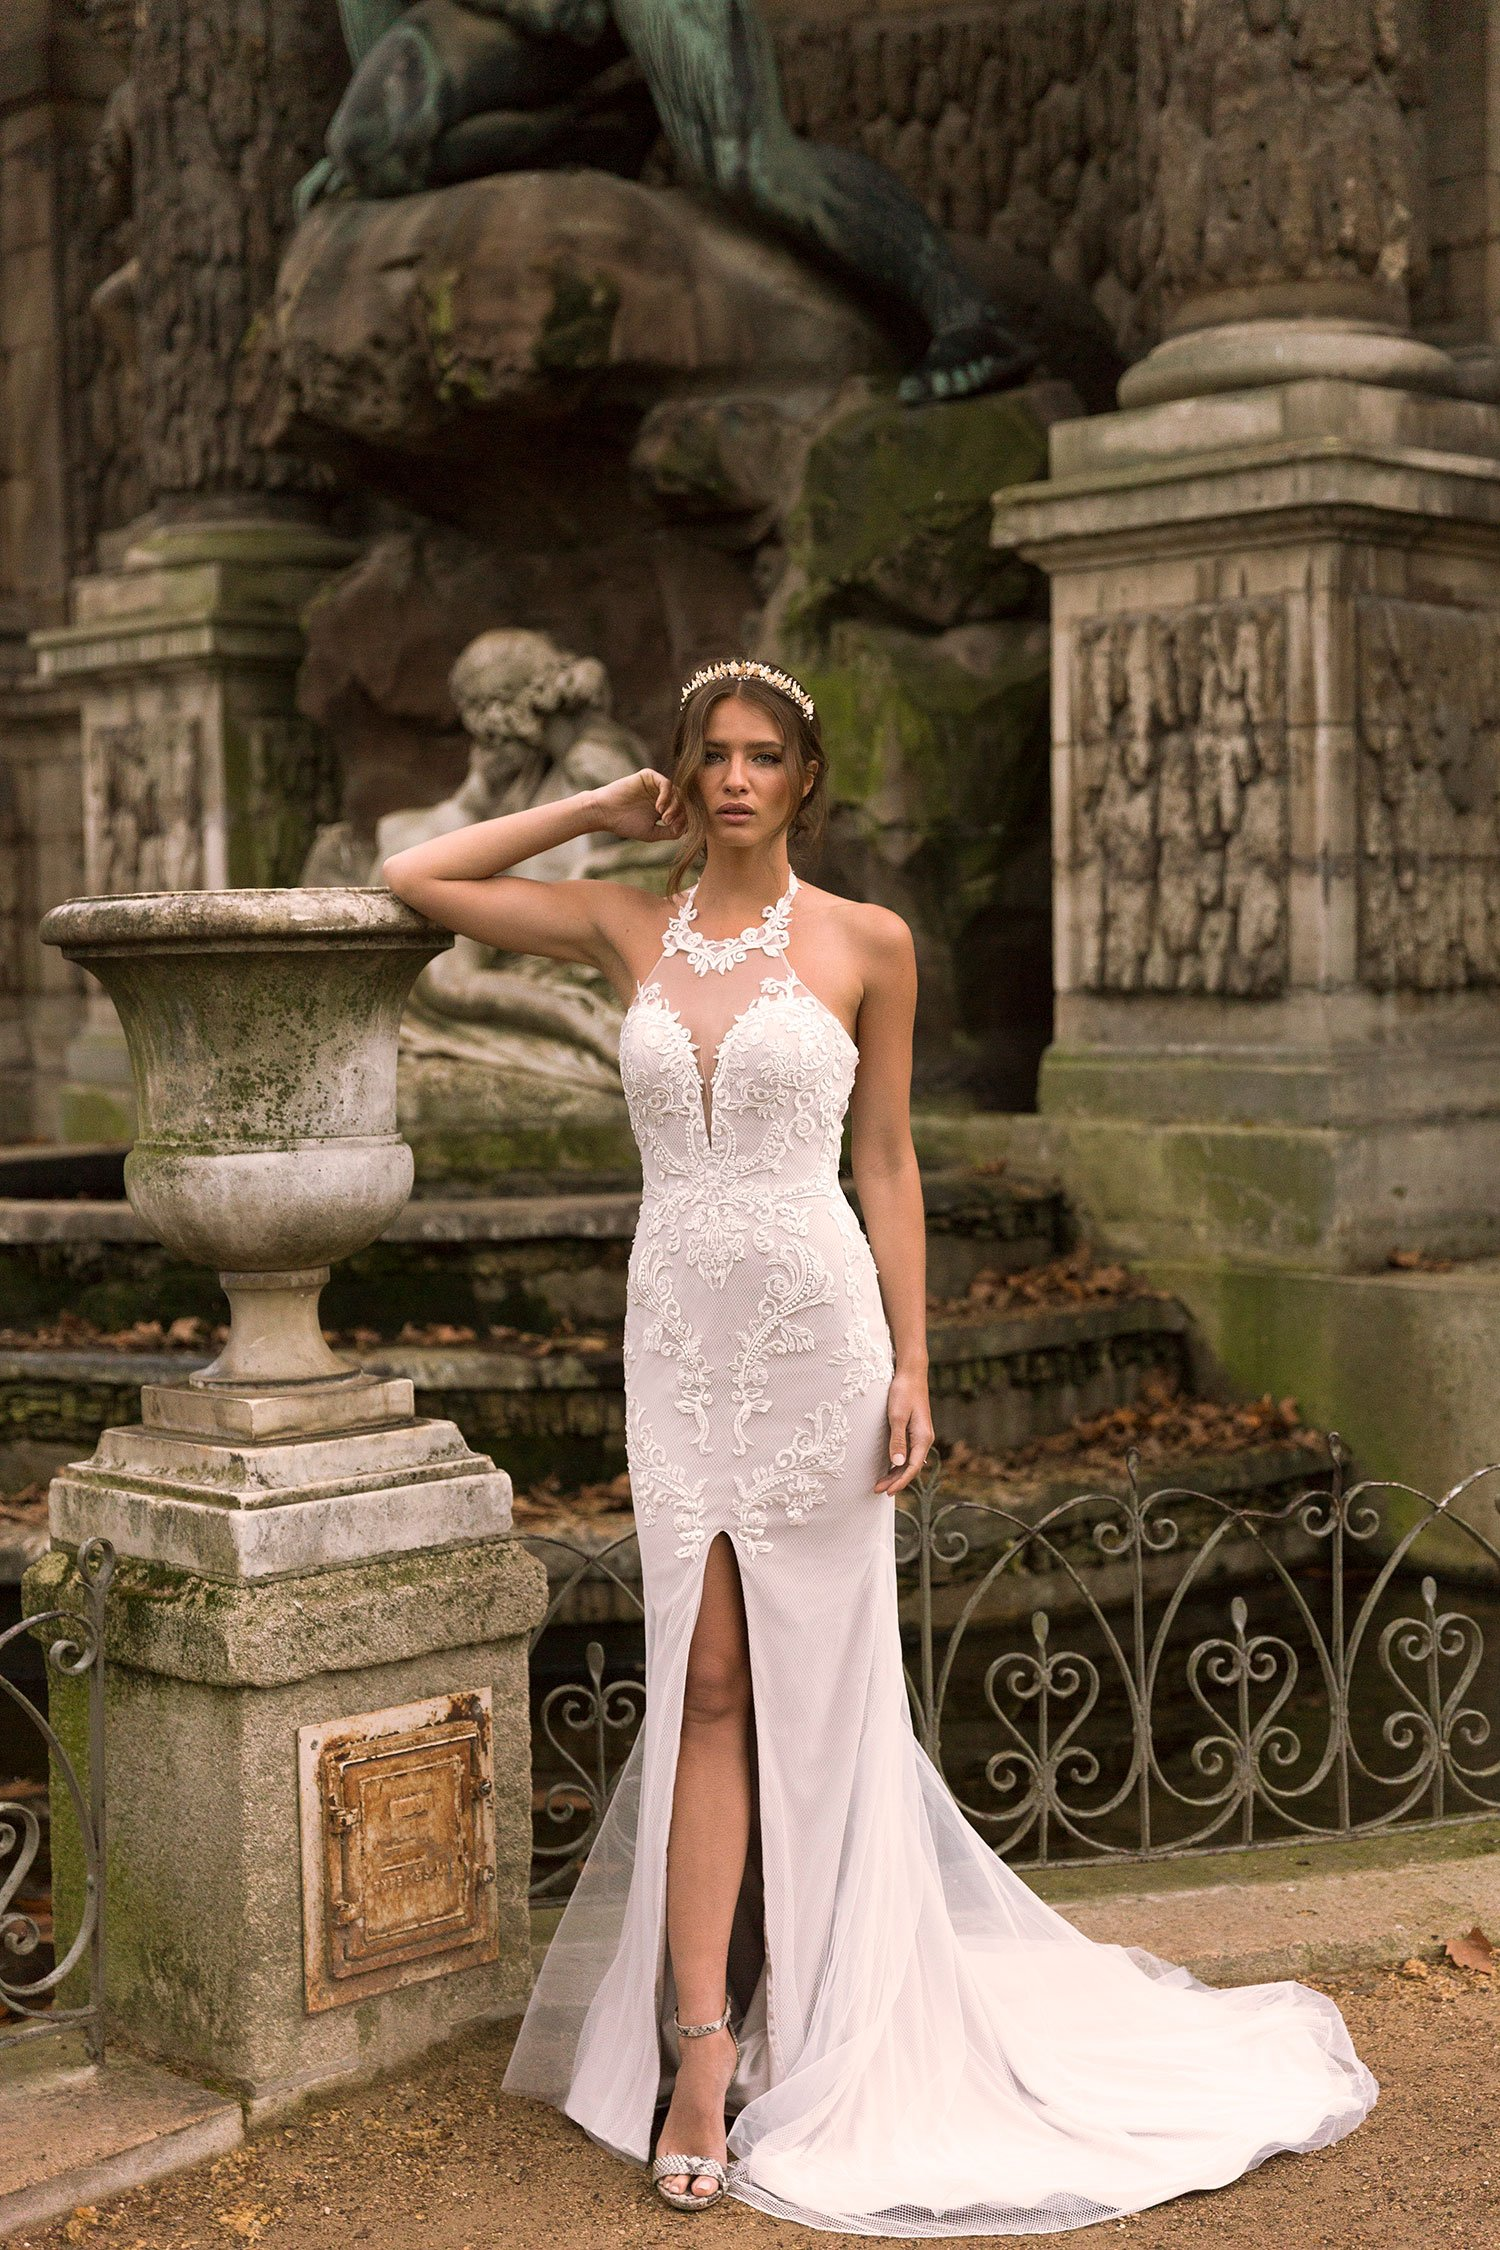 IVANA-ML7819 & ML7819NS (NO SPLIT)-LACE-AND-TULLE-FITTED-HALTER-NECK-GOWN-WITH-CENTER-FRONT-SPLIT-WITH-ZIP-AND-BUTTON-UP-BACK-WEDDING-DRESS-MADI-LANE-BRIDAL1-